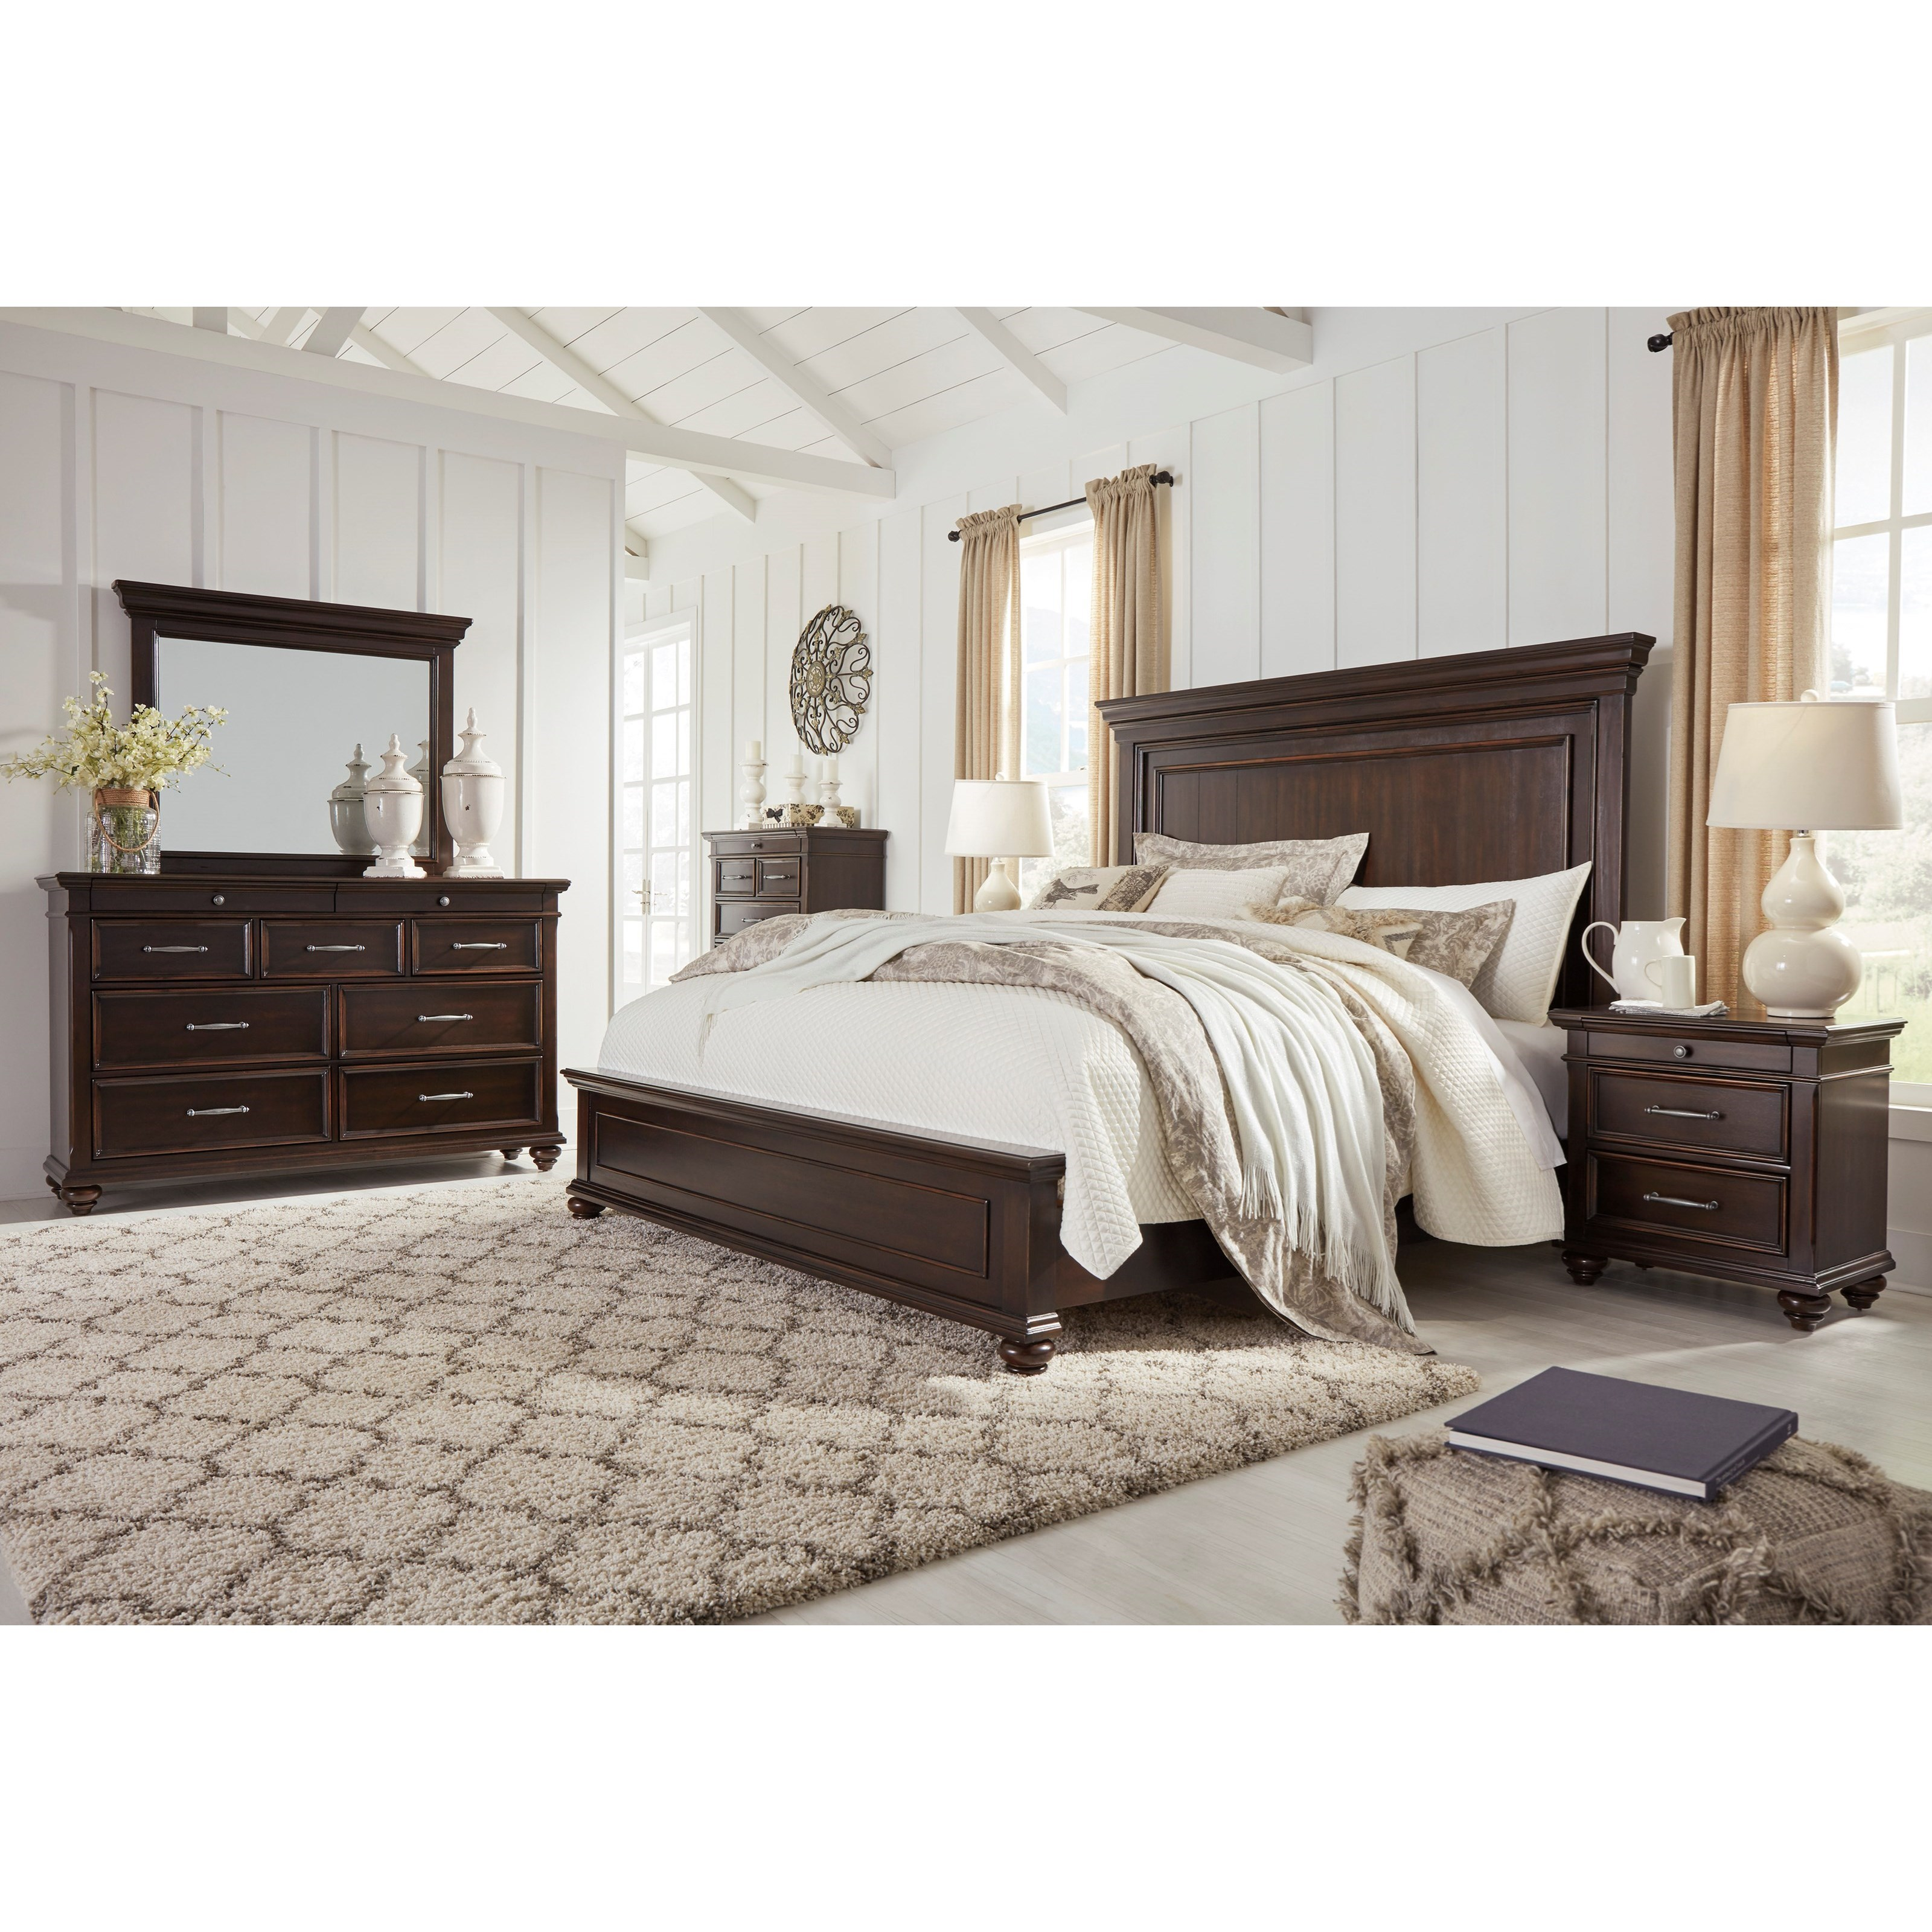 Brynhurst King Bedroom Group by Ashley (Signature Design) at Johnny Janosik